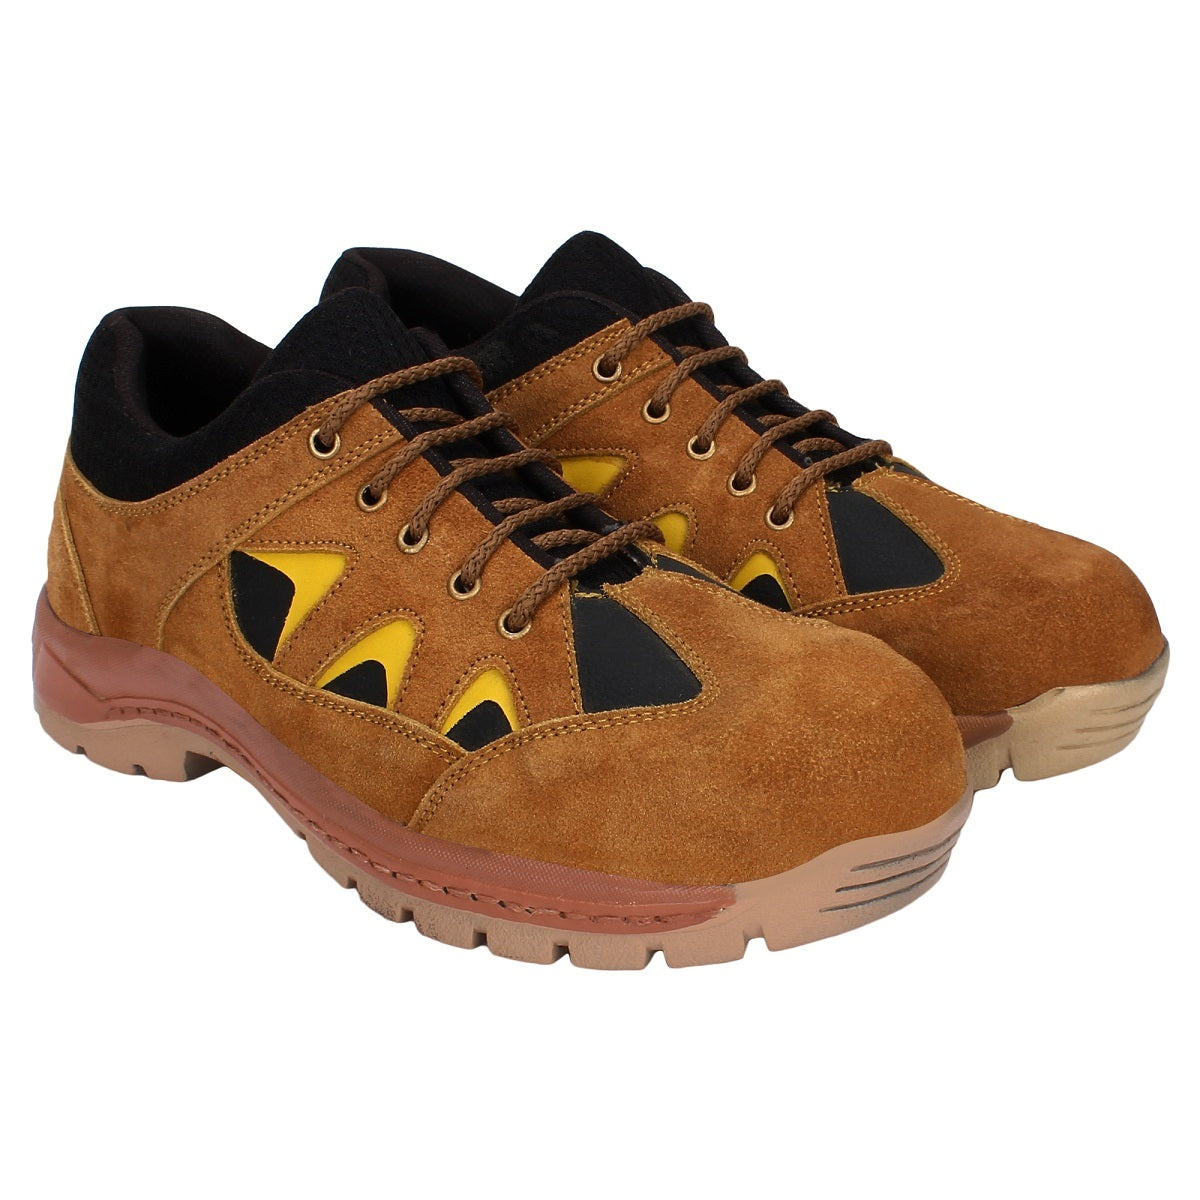 Roarking Sporty Look Safety Shoes for Men - SeeandWear